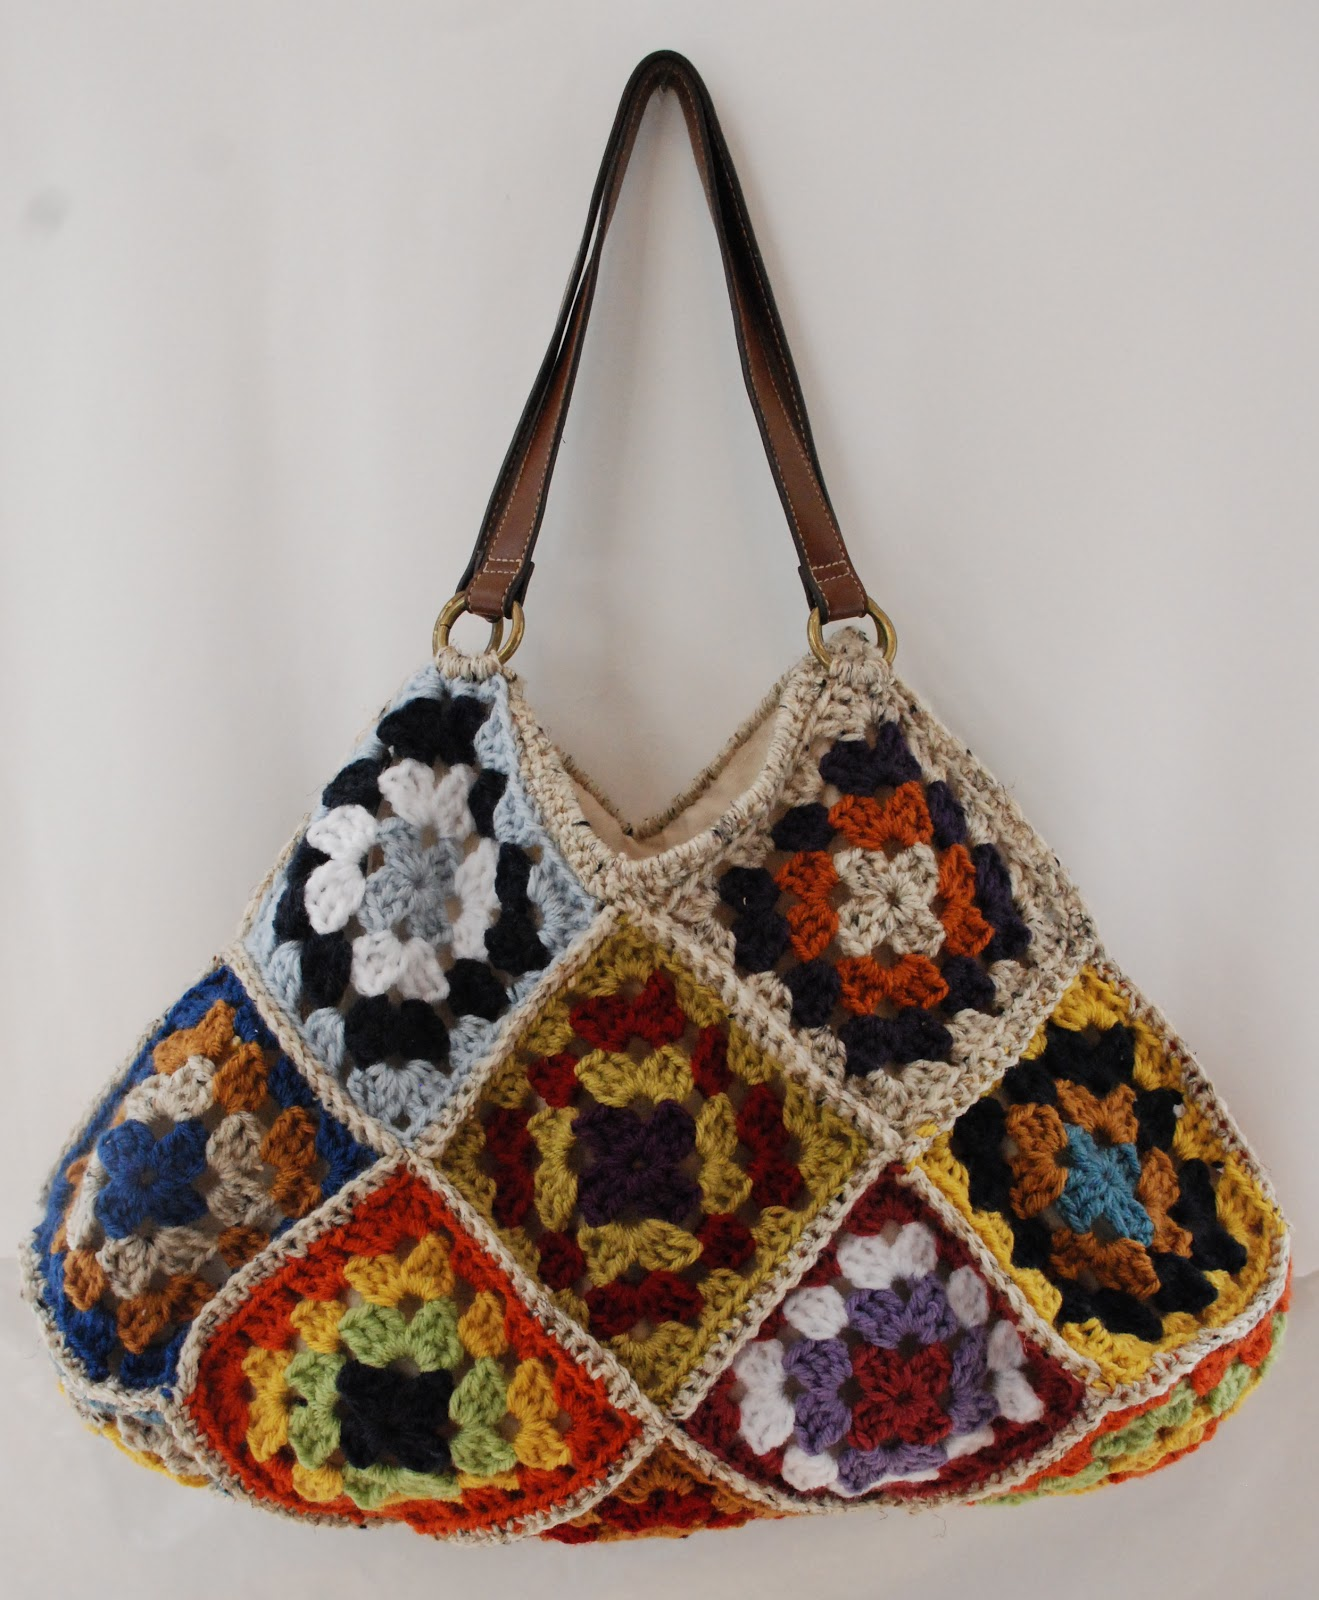 Crochet Granny Square Purse Pattern : Kristis Twist: Crochet granny square bags, laptop sleeve